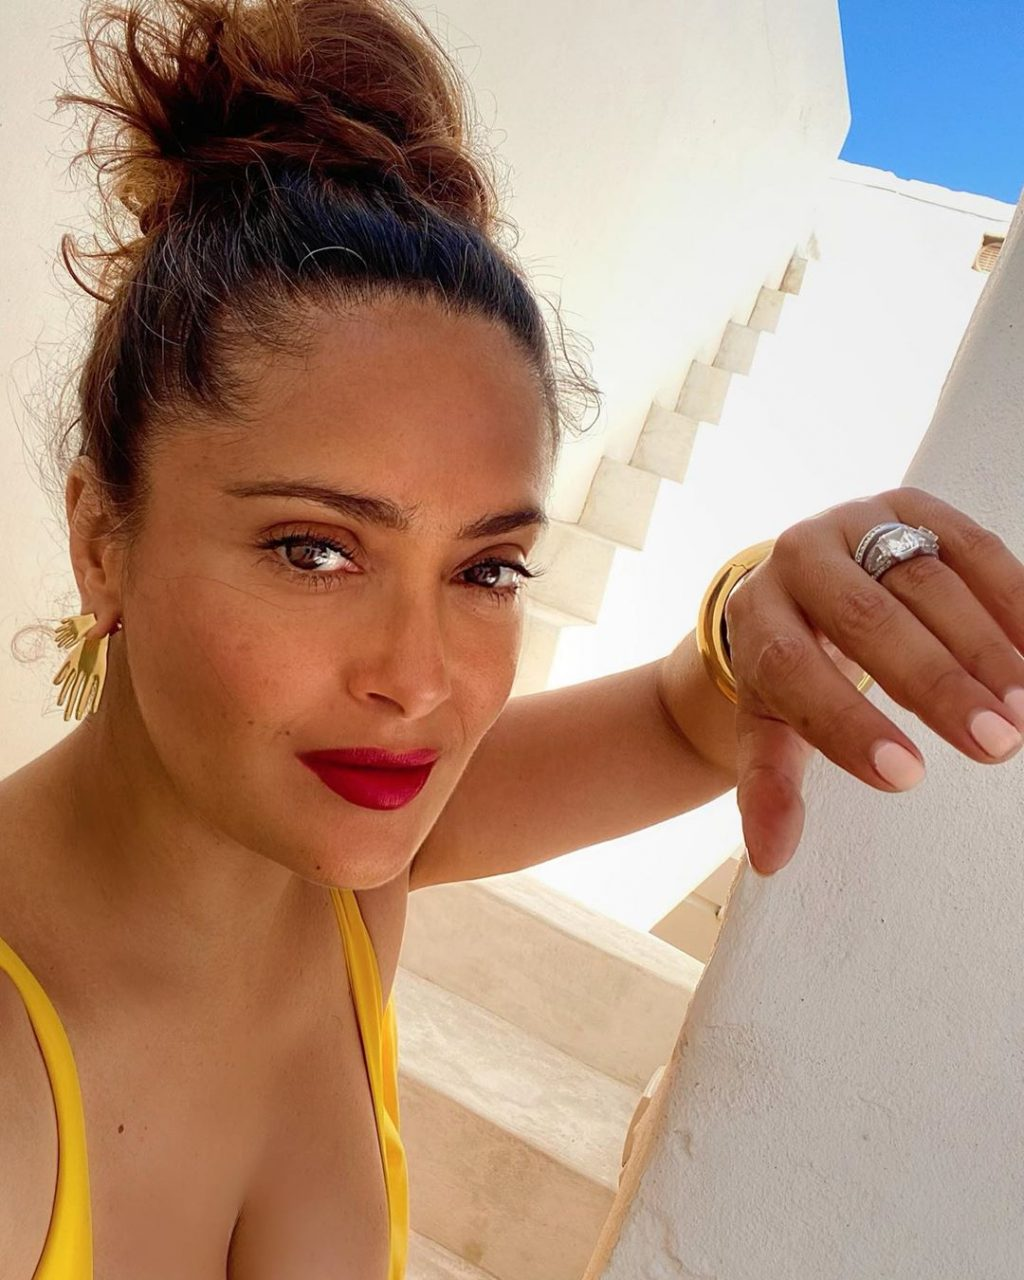 Salma Hayek Shows Her Sexy Body in Swimsuits (3 Photos)